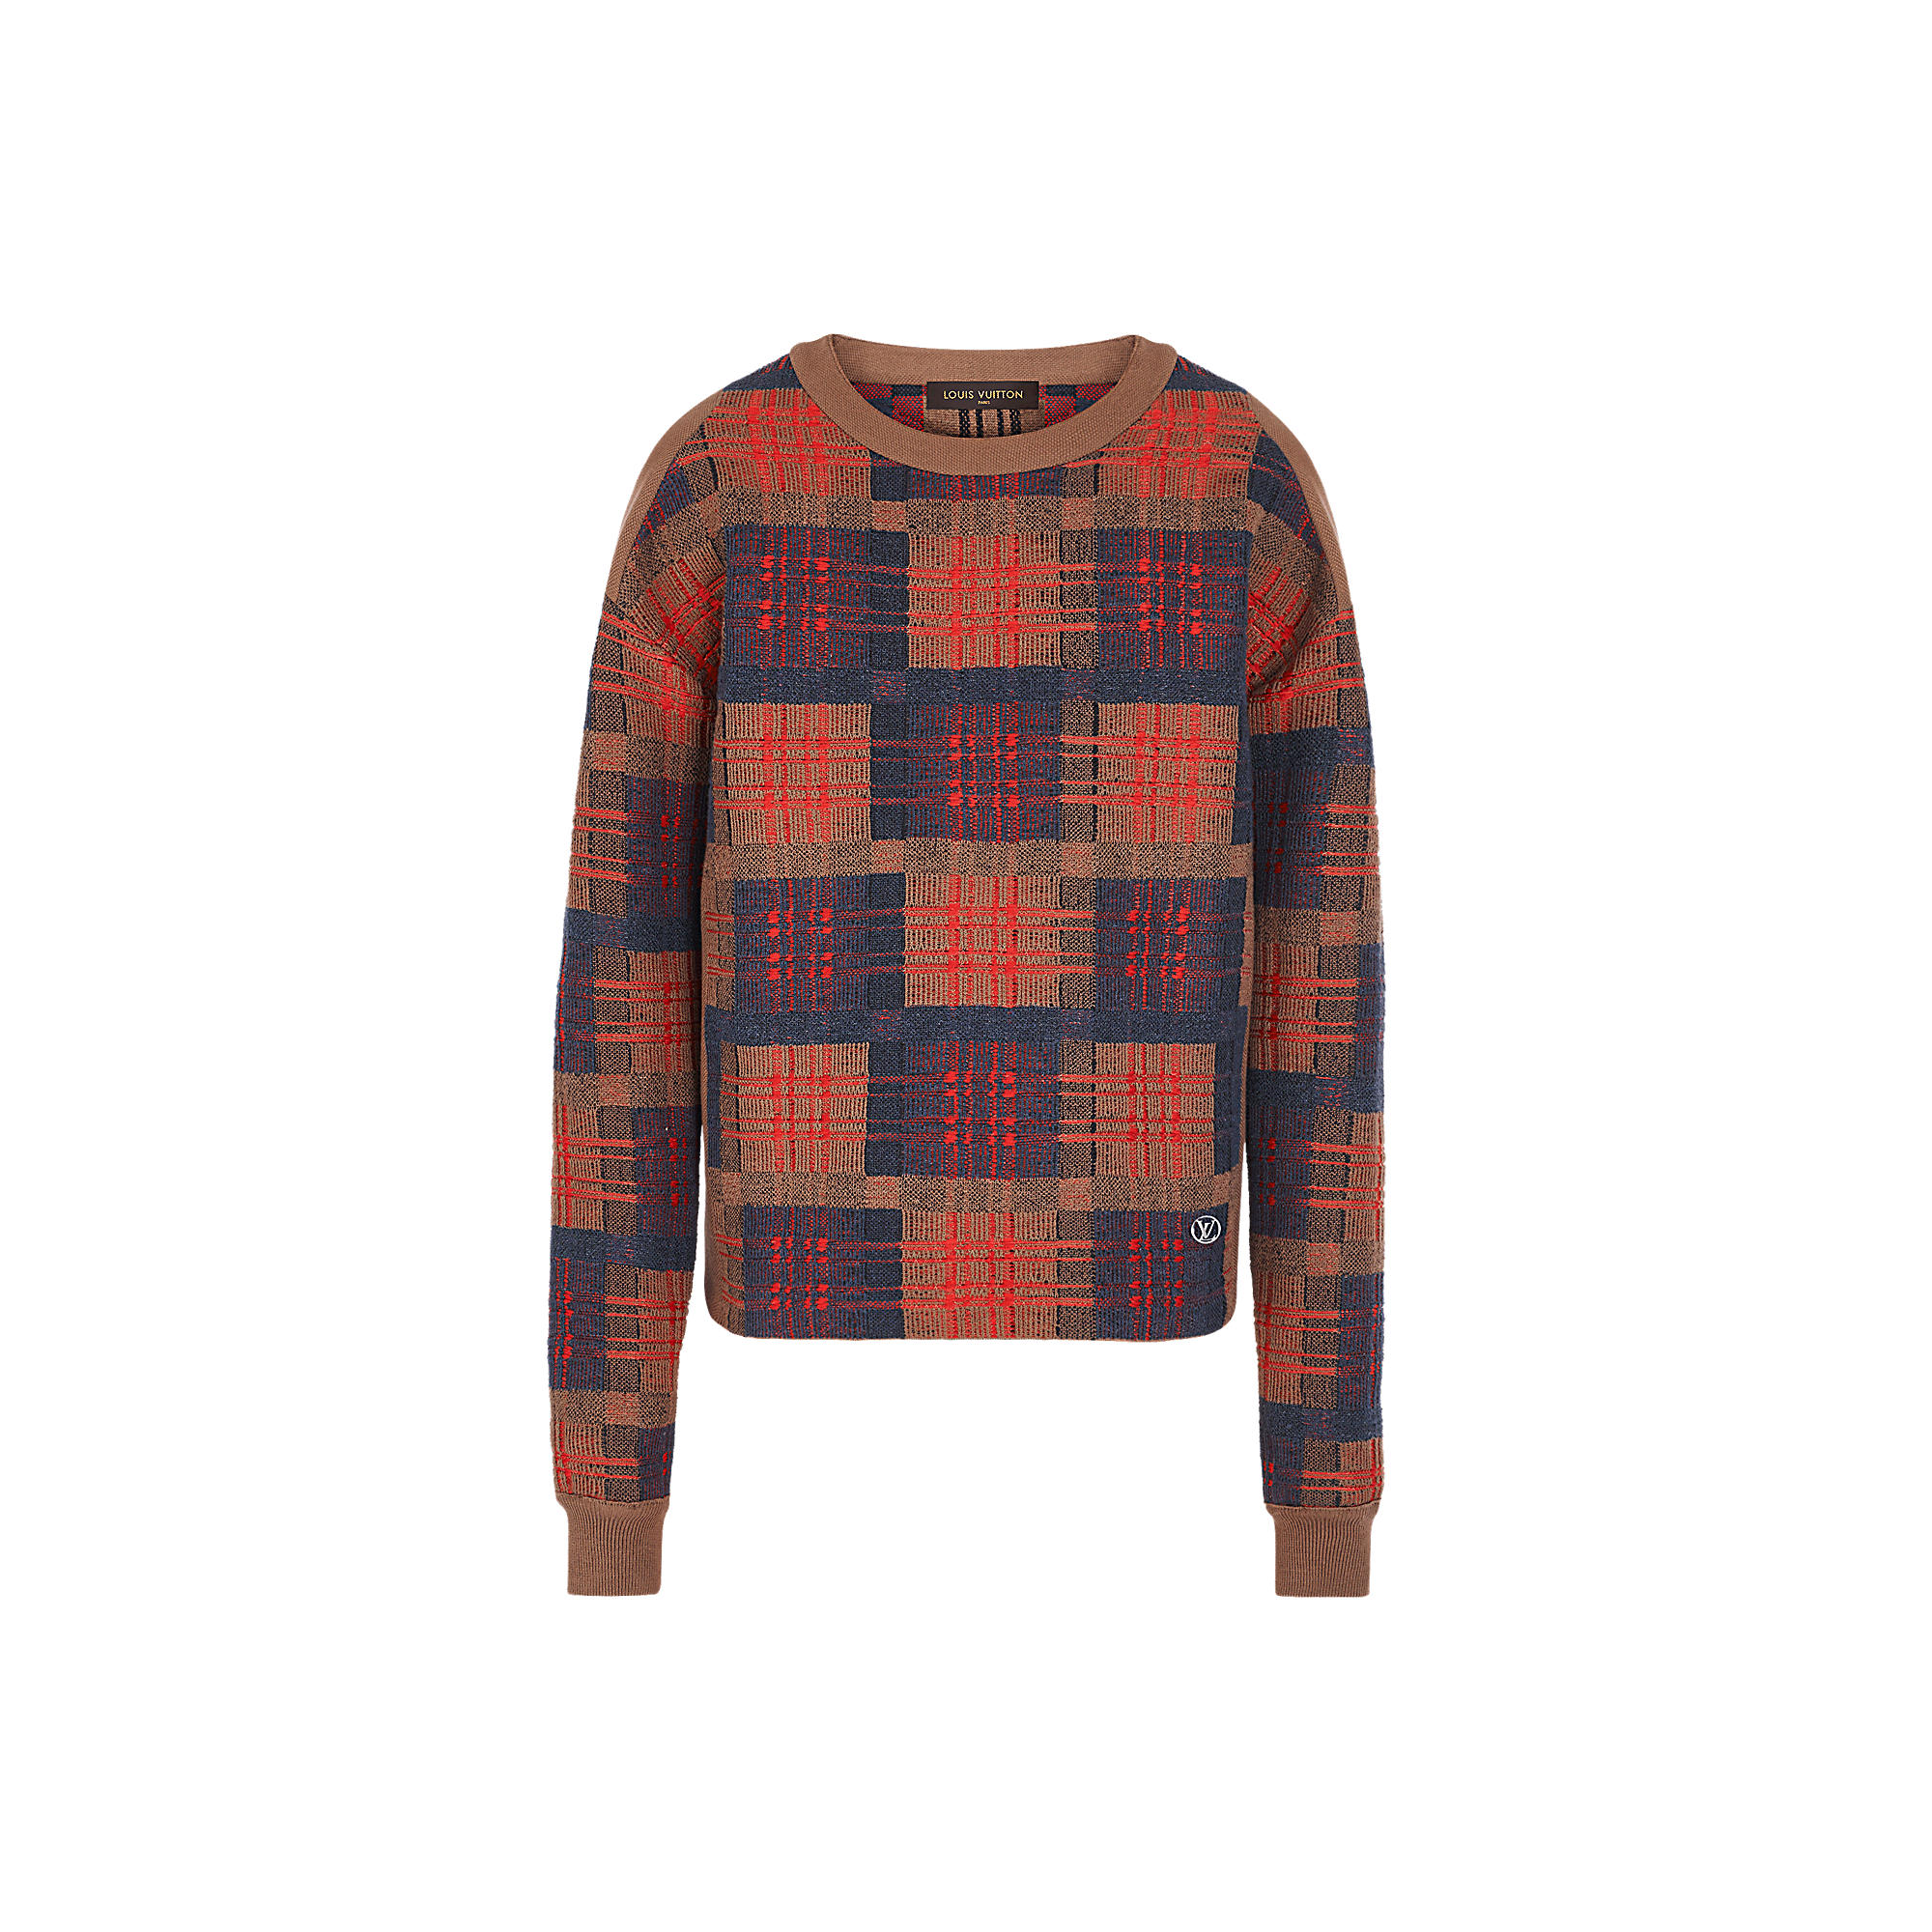 Louis Vuitton Uomo GIROCOLLO PUNK CHECK